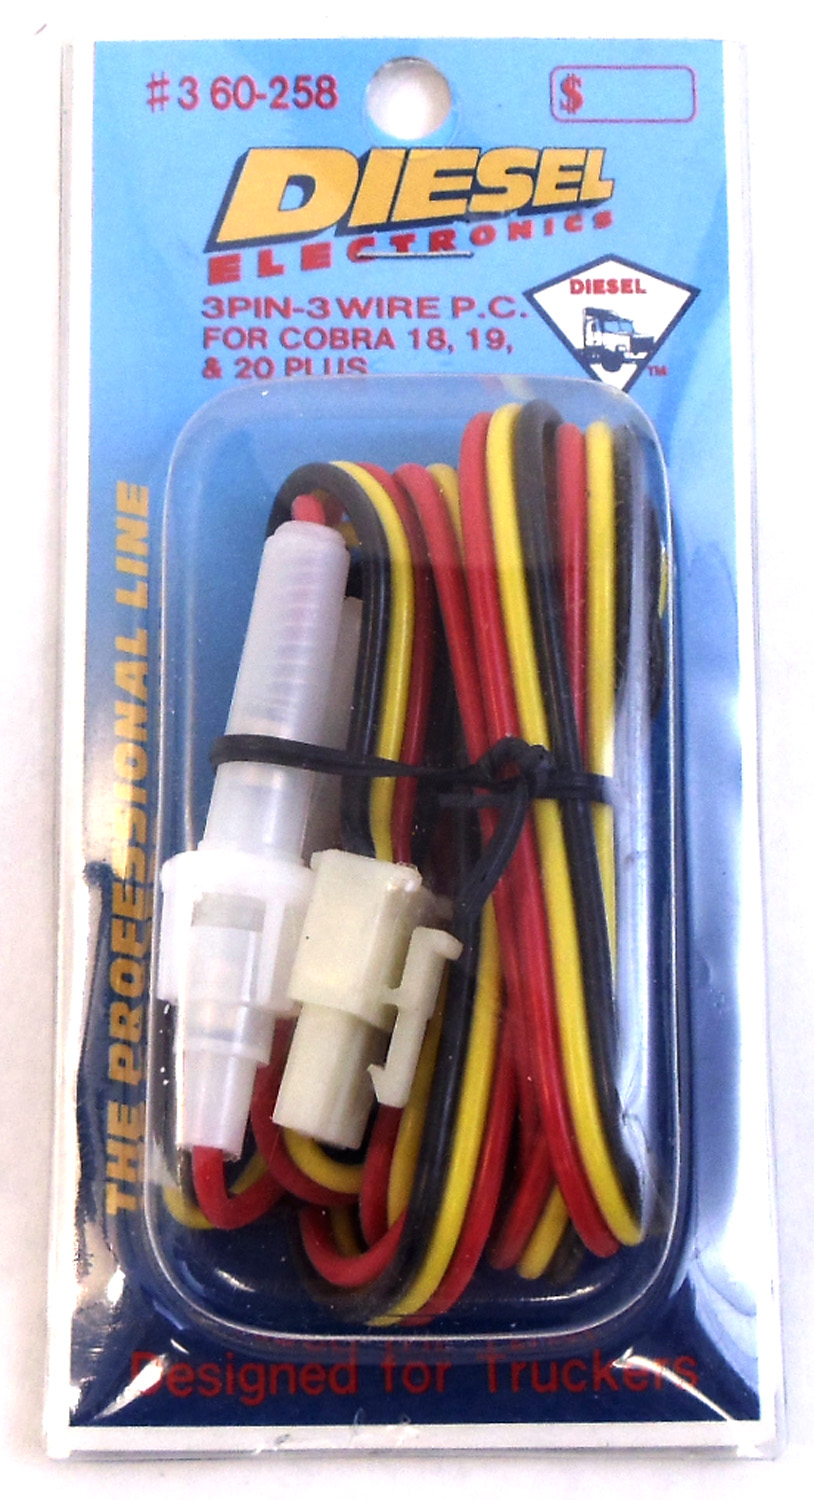 360258 - Power Cord for Cobra 18 19 and 20 Plus Radios